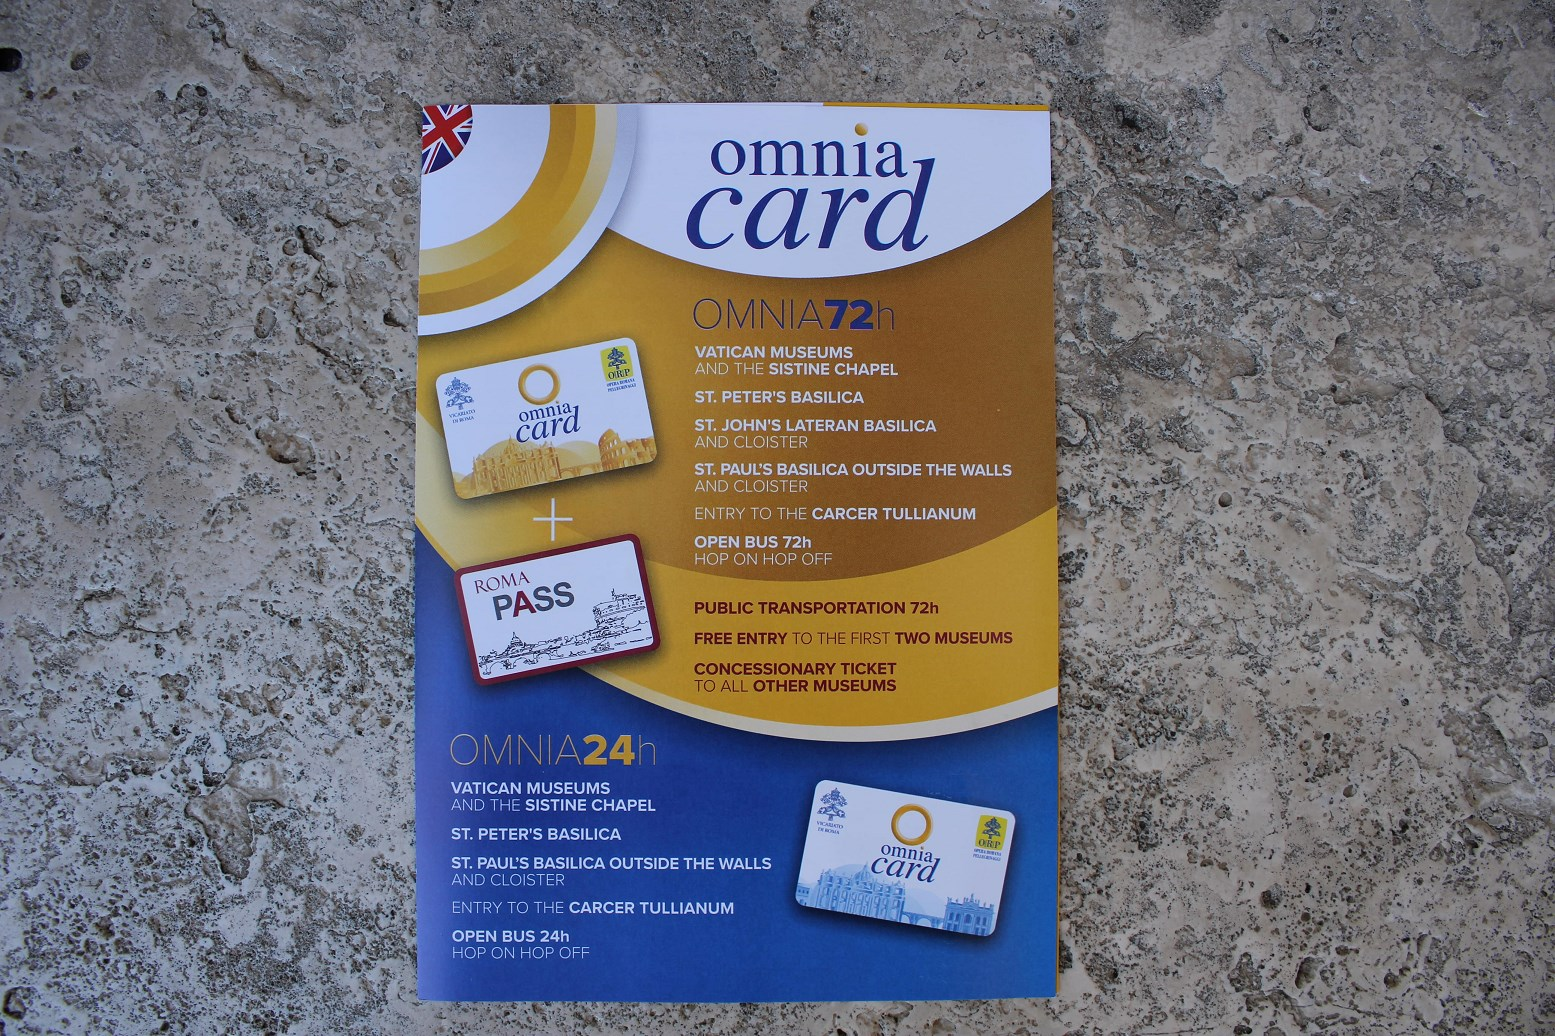 vatican museum and garden tickets omnia card rome